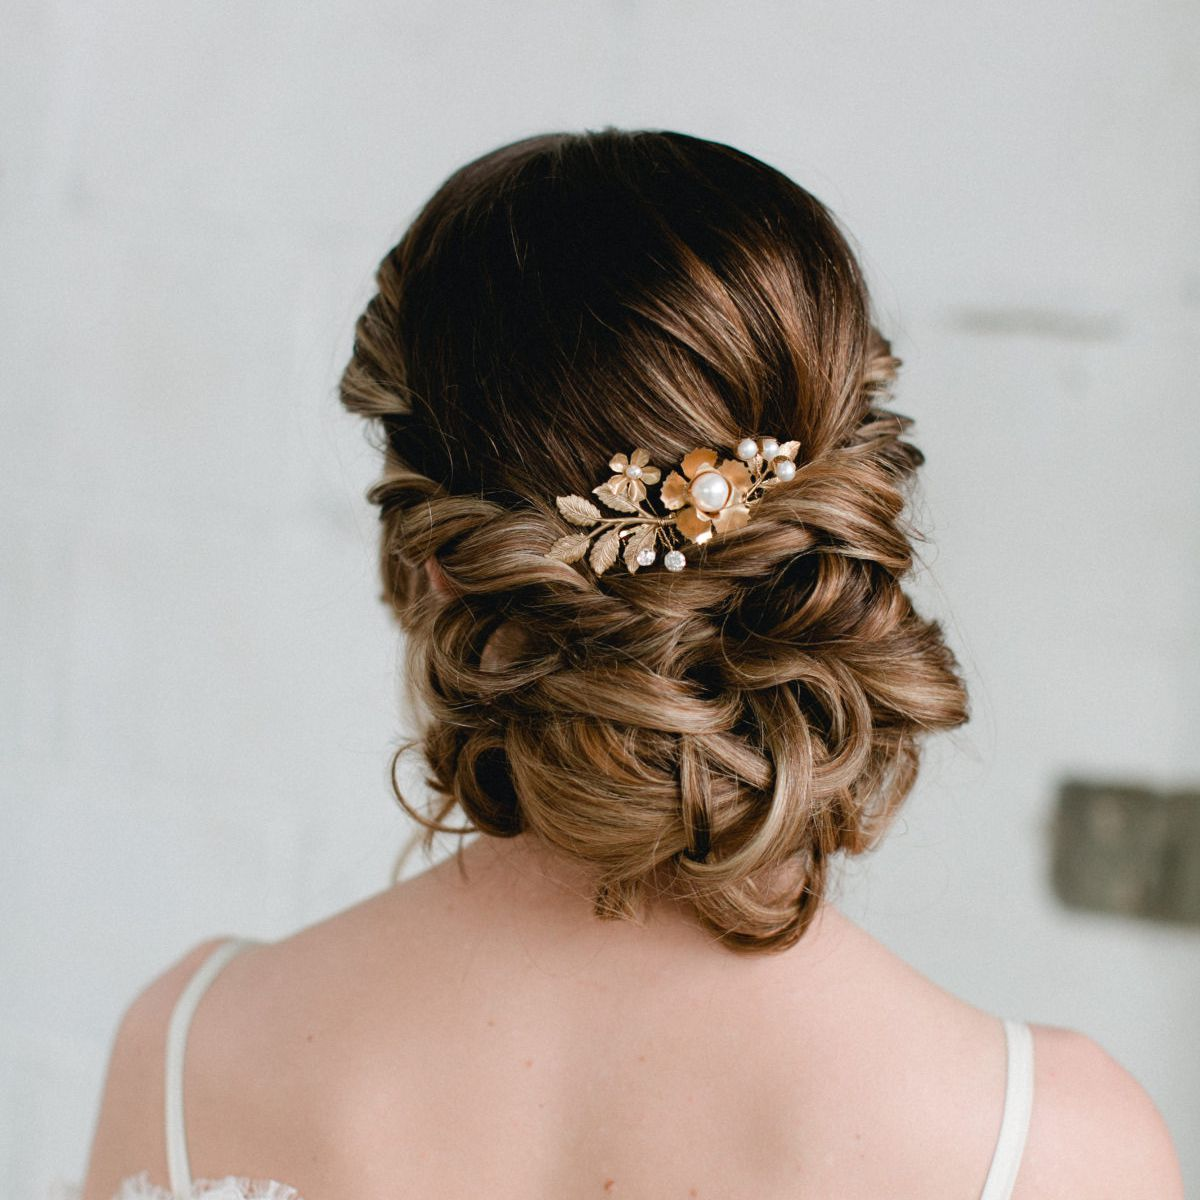 11 Wedding Hairstyles for Brides with Long Hair